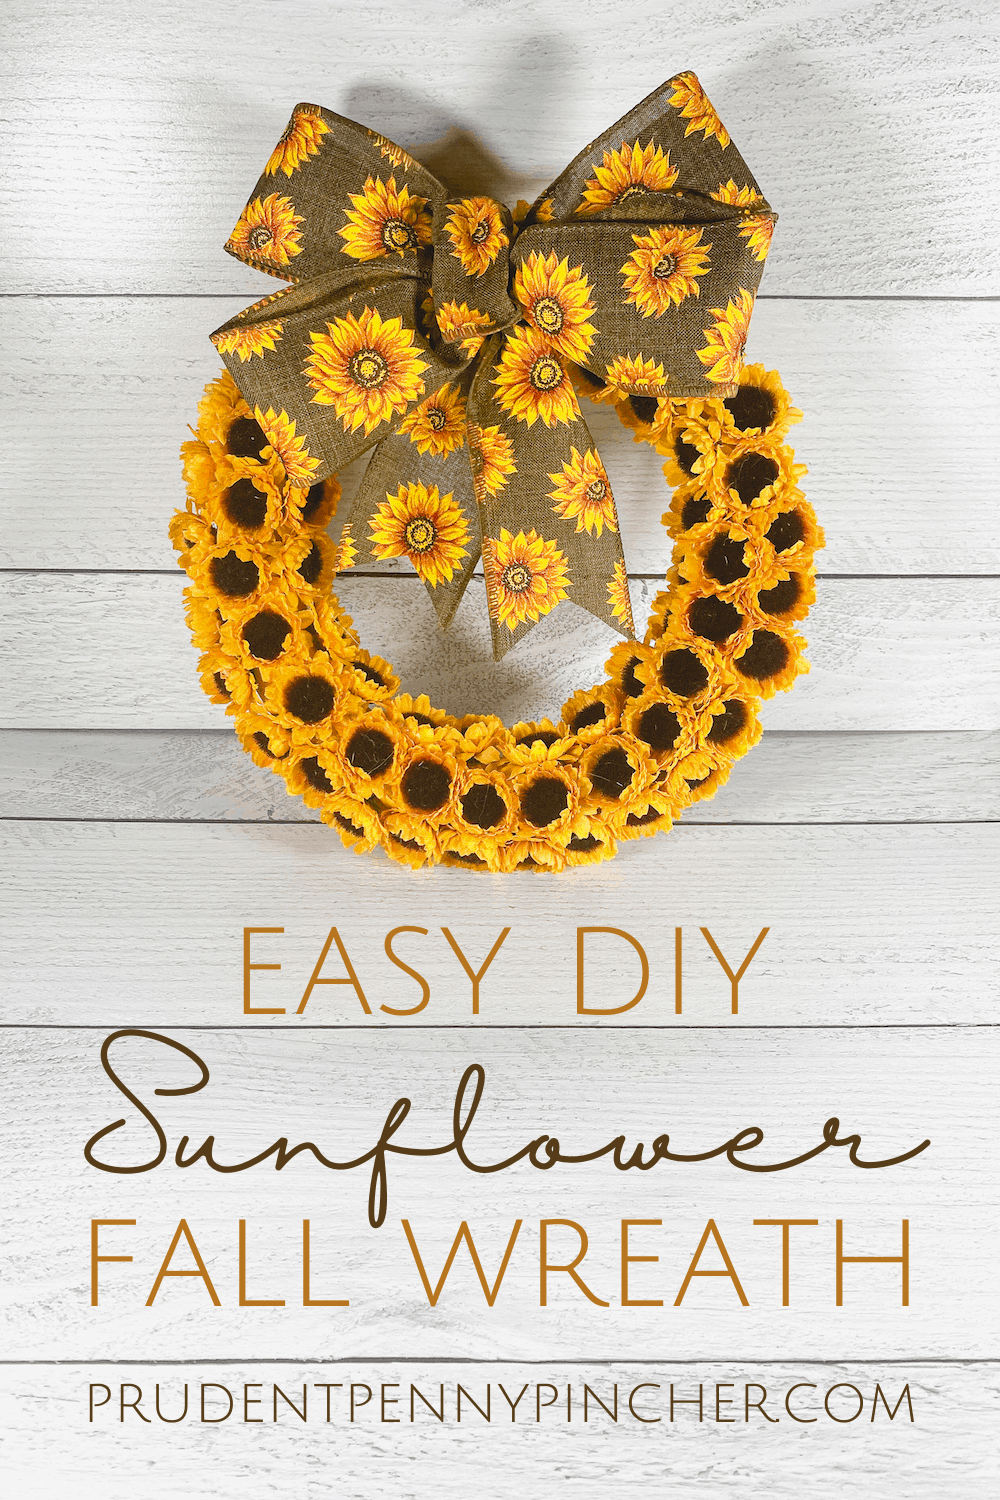 DIY sunflower wreath with florals and a burlap bow